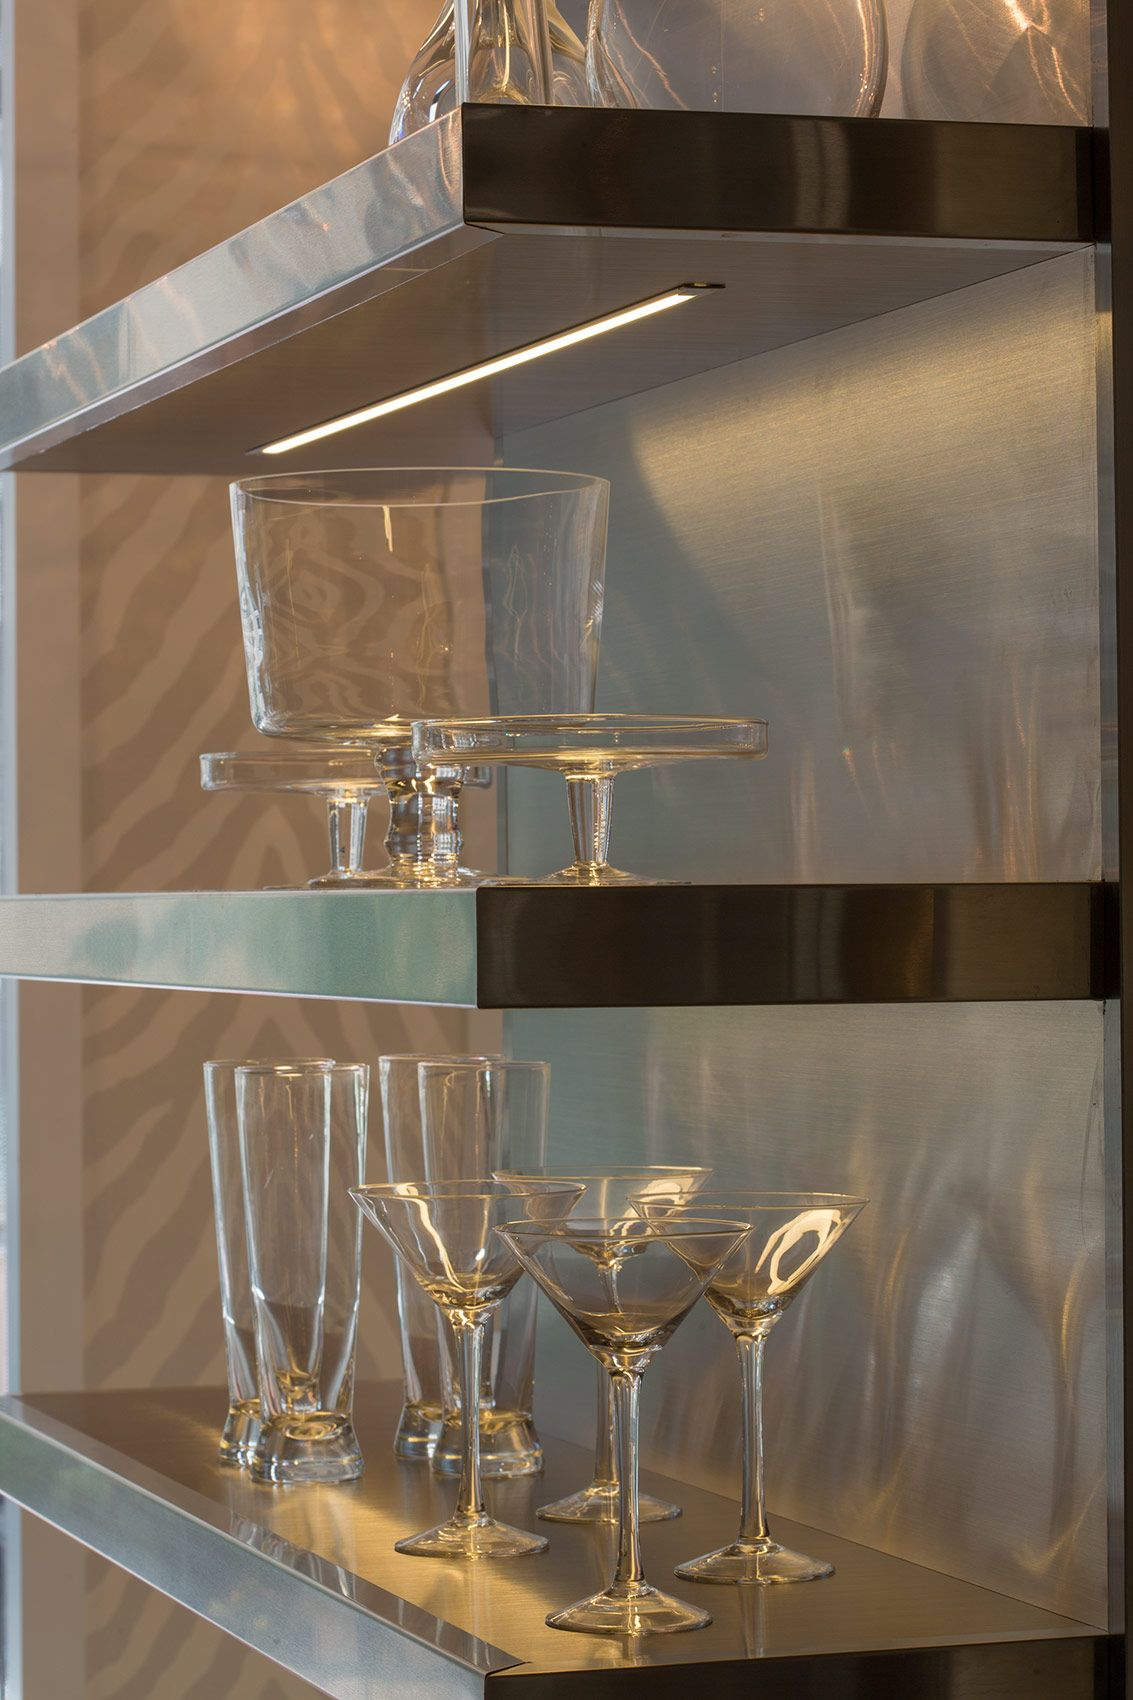 Shelf stainlesssteal glass kitchen sexy our showroom pinterest